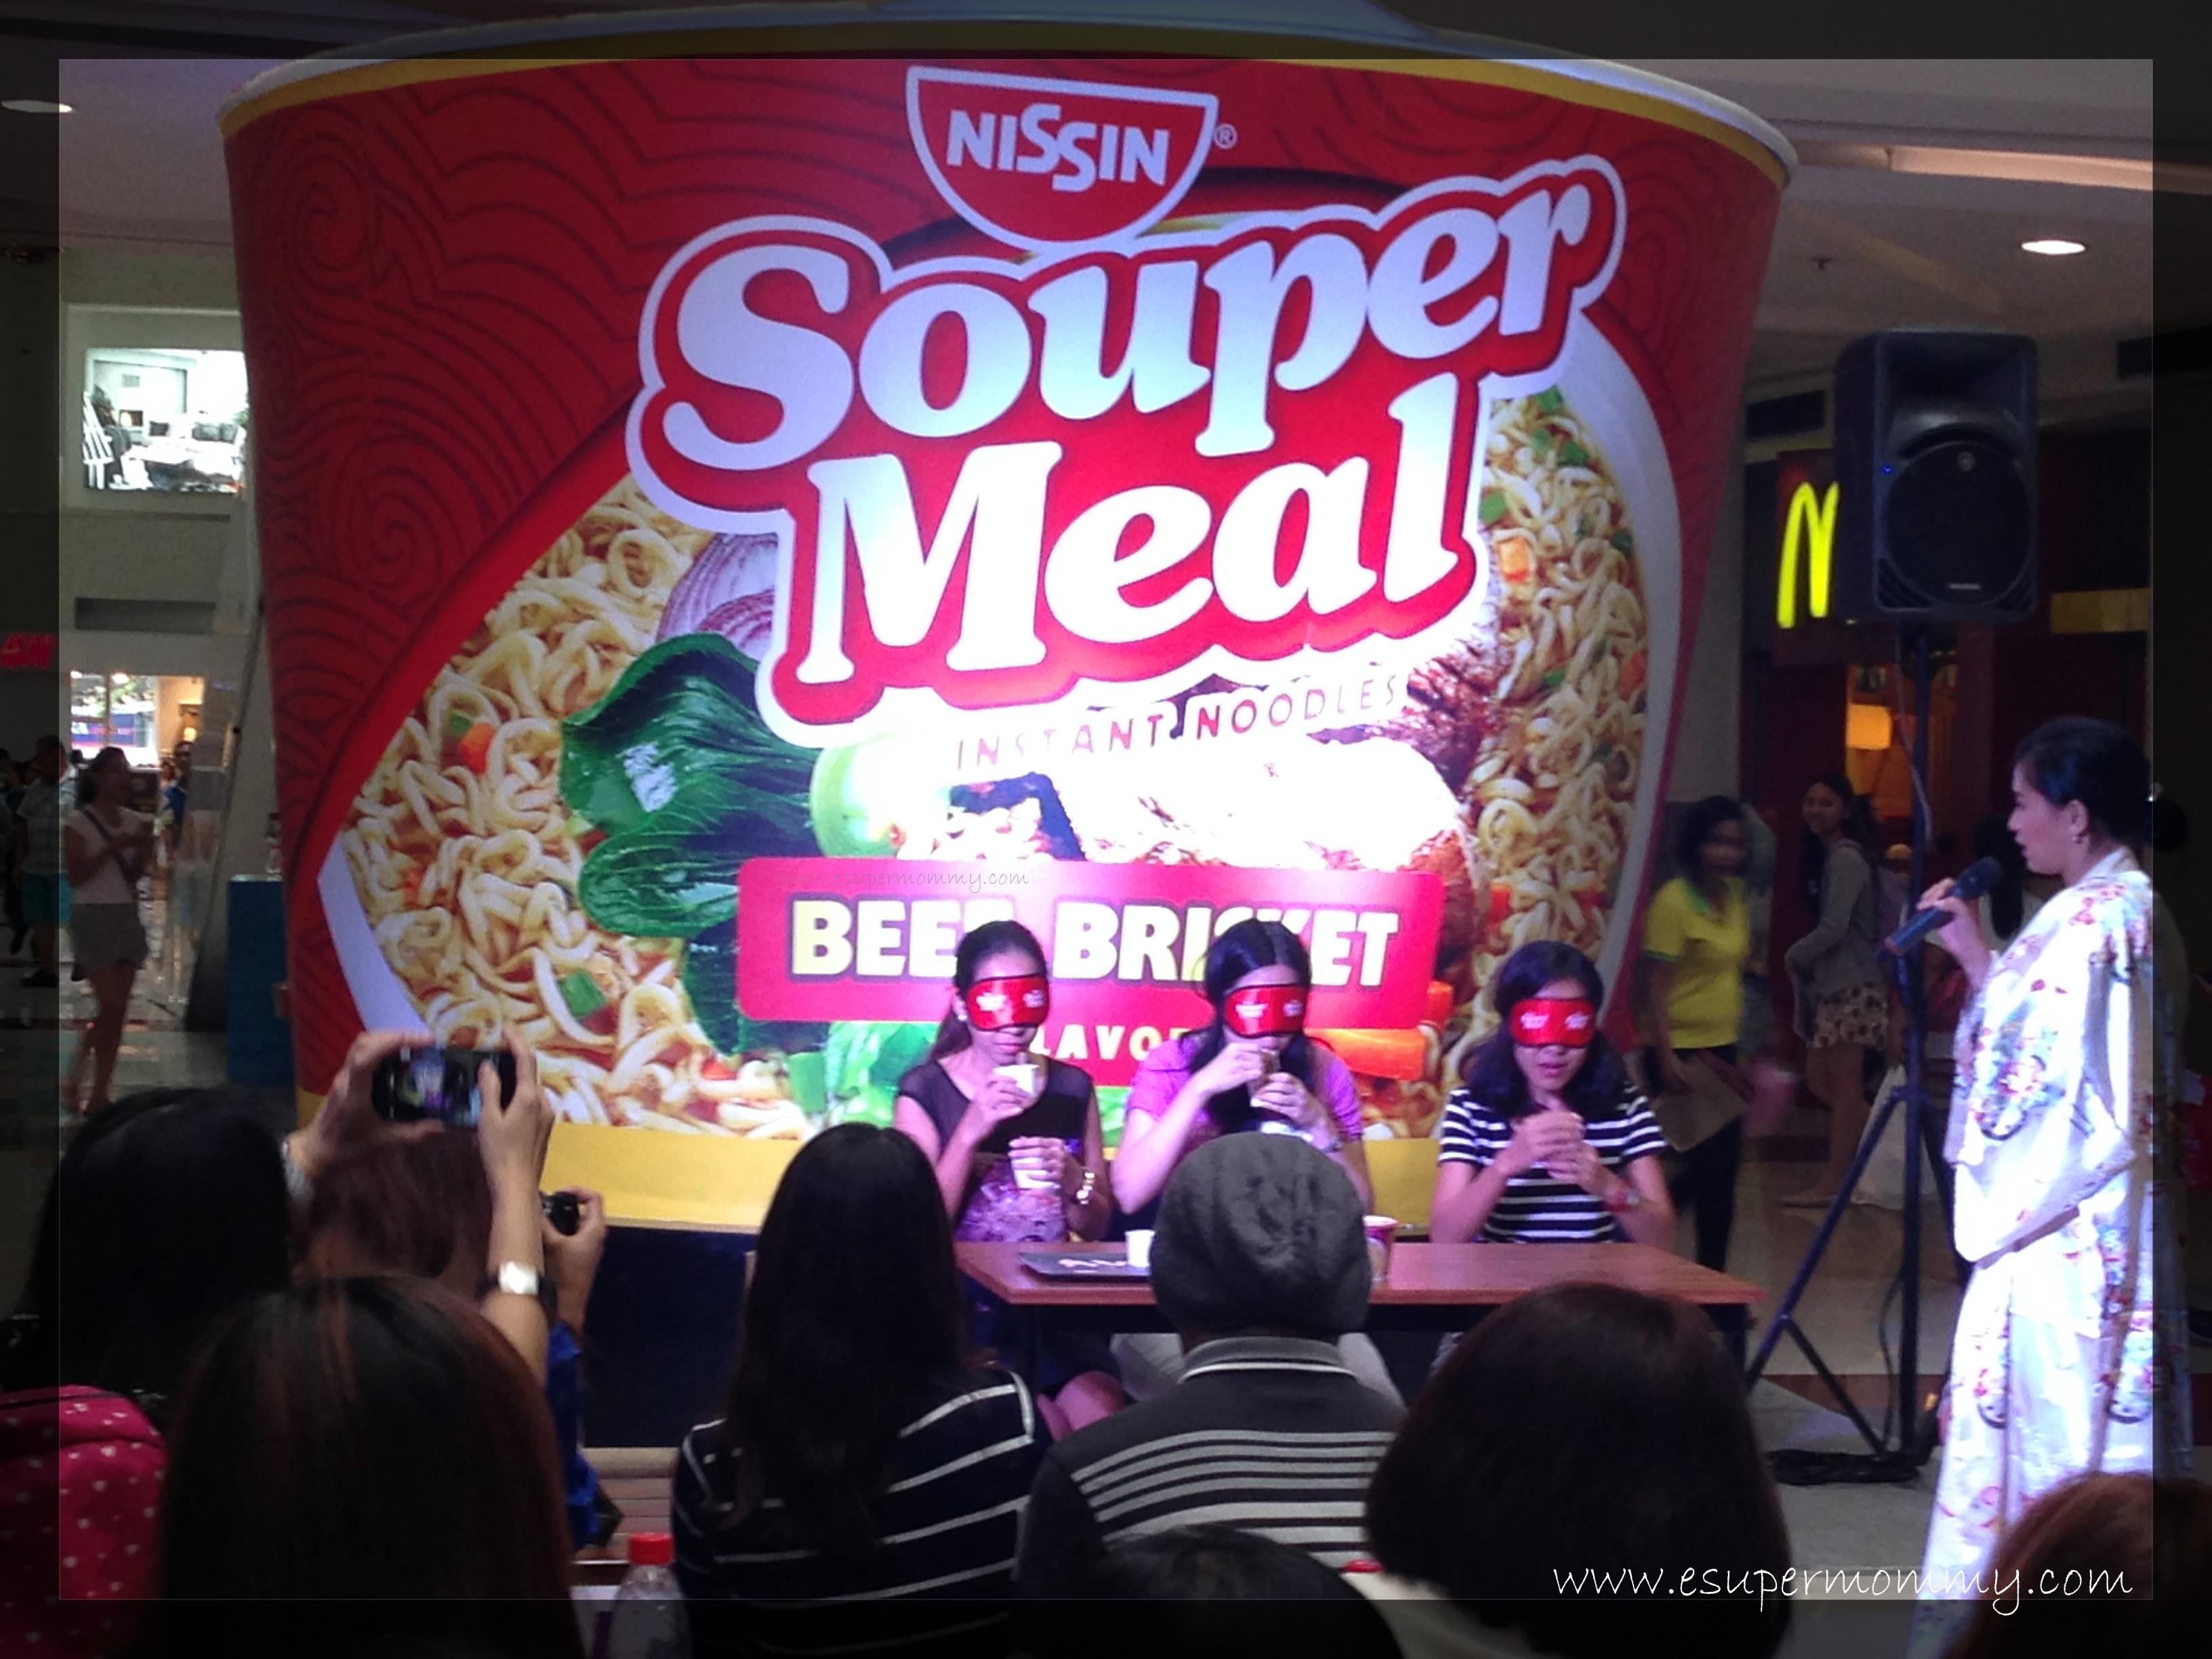 Nissin-Souper-Meal-Event